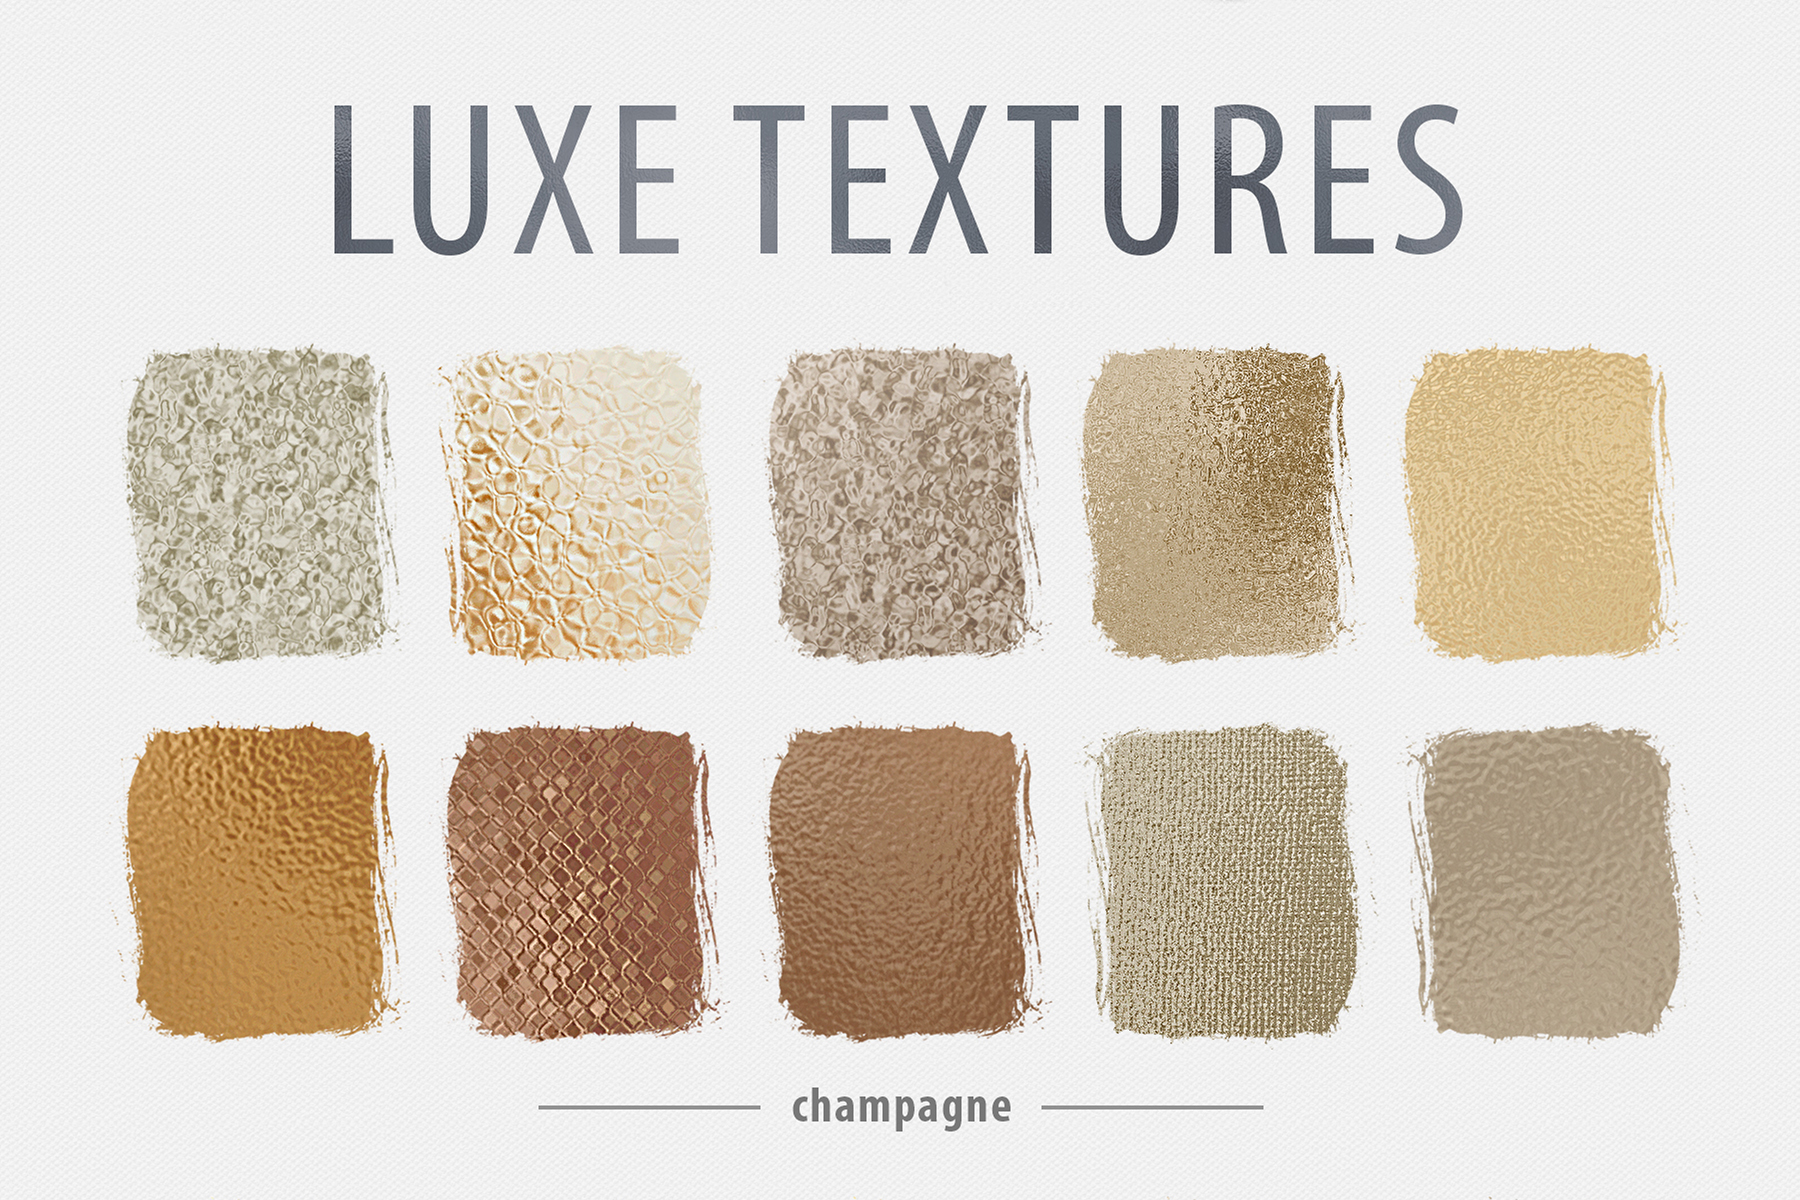 Luxe - 200 Textures and Patterns - Foil, Glitter, Marble example image 9